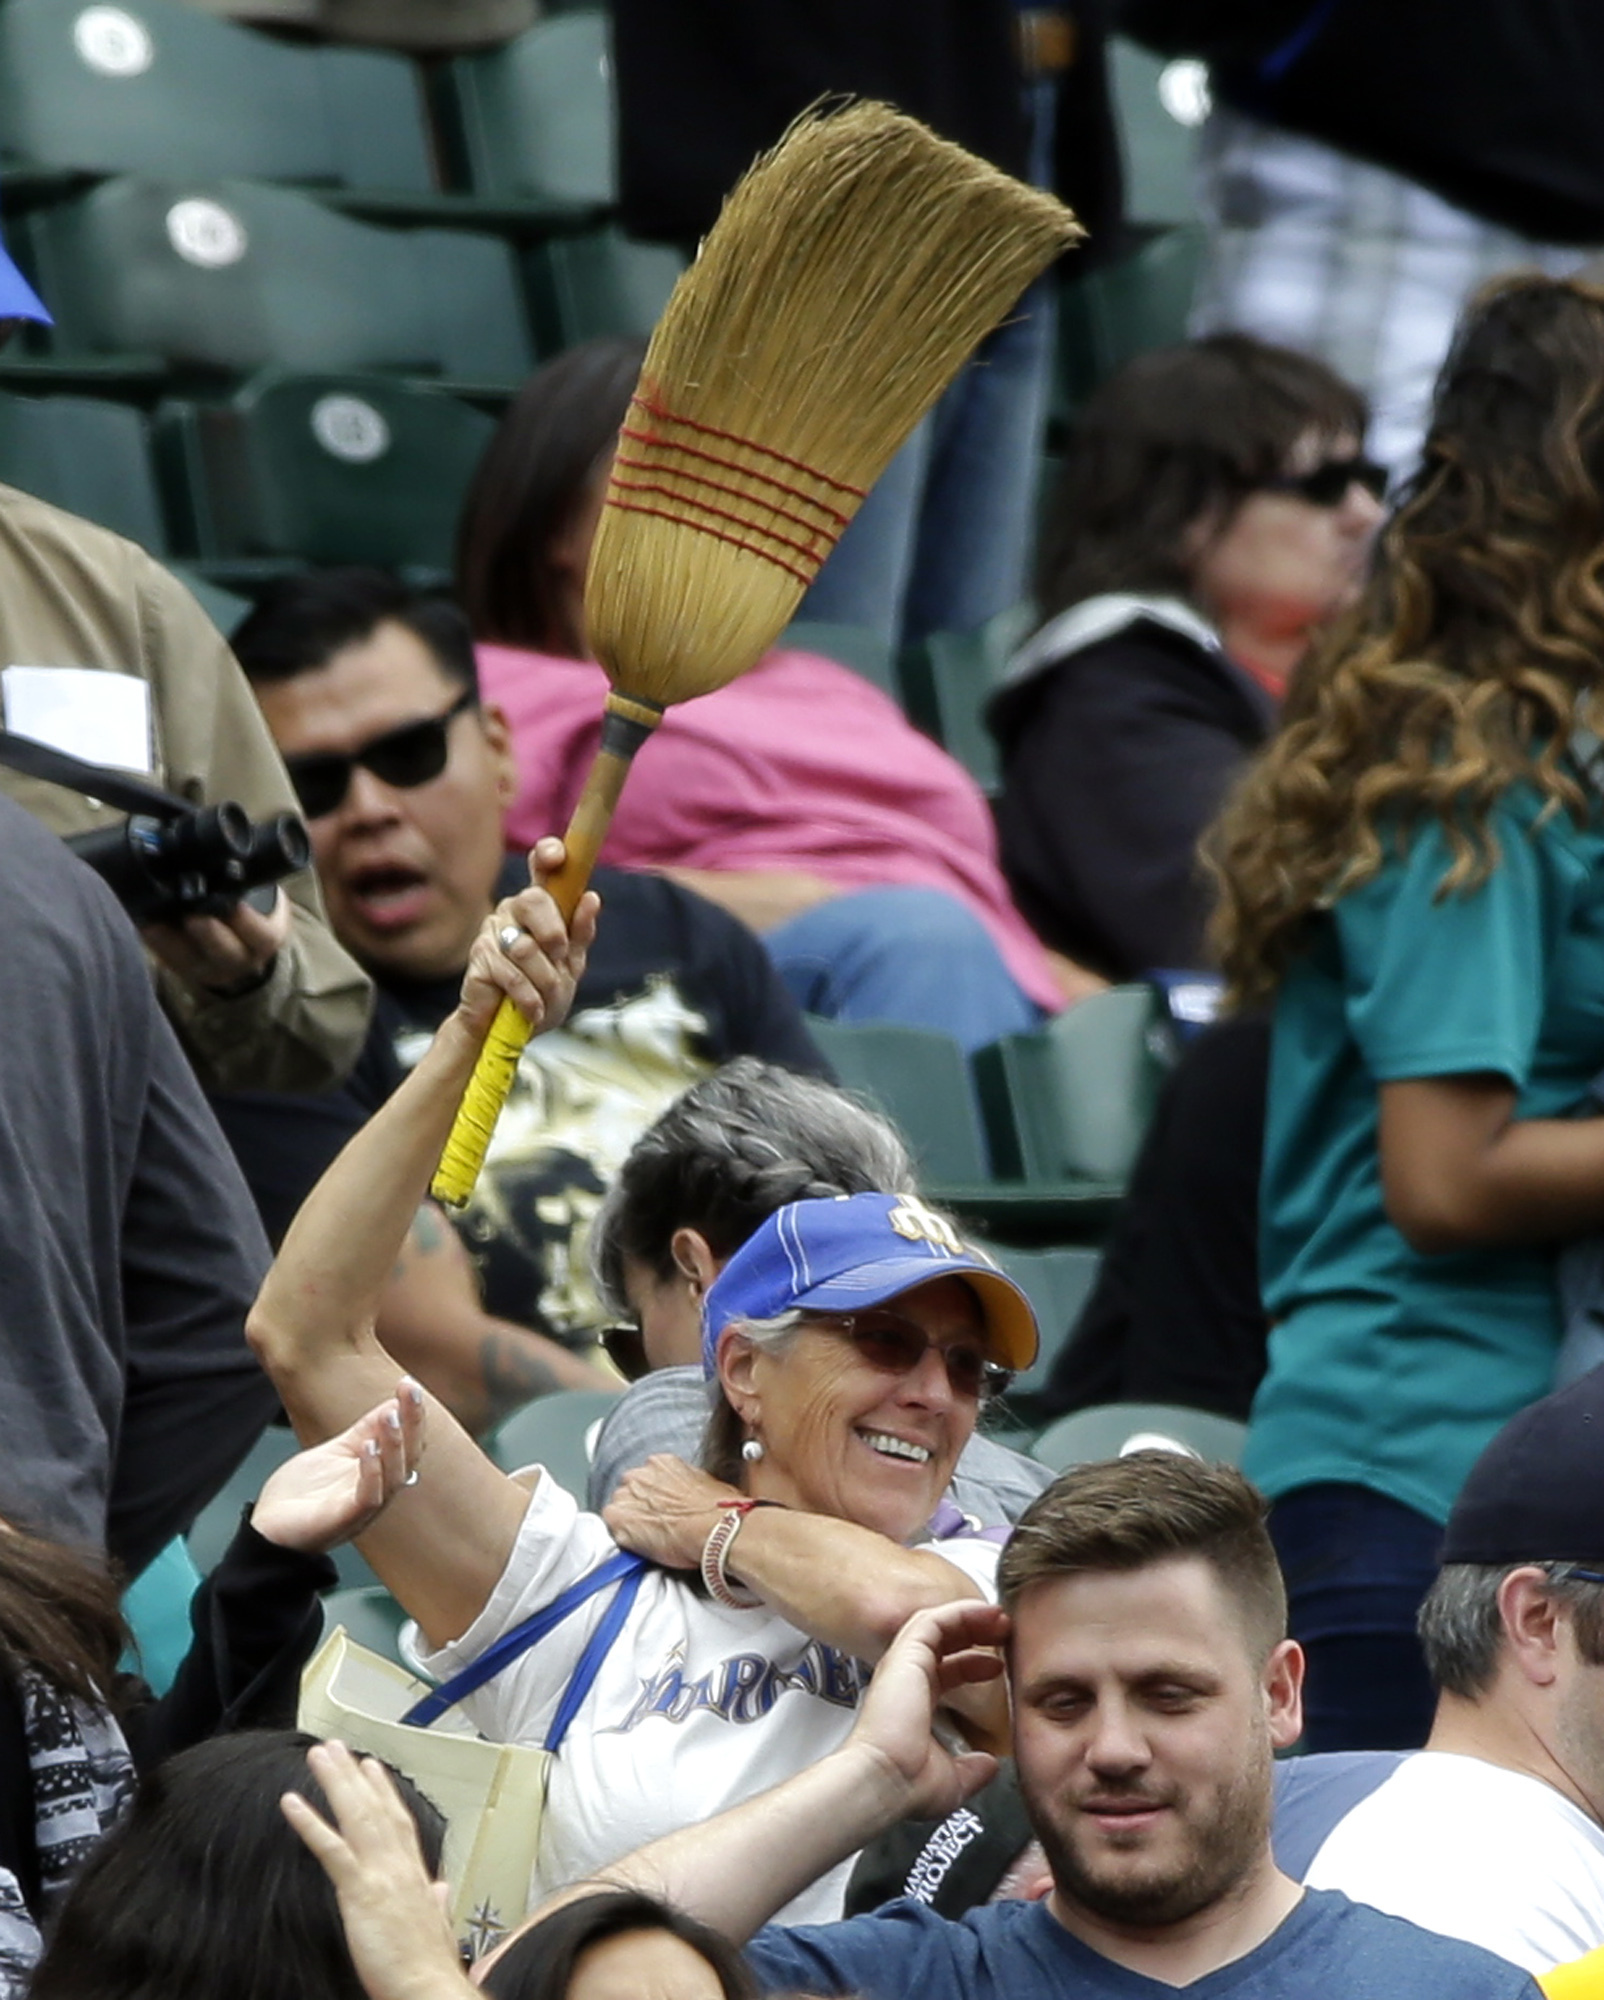 A Seattle Mariners fan waves a broom in the stands during the ninth inning of the Mariners 9-4 win over the Baltimore Orioles in a baseball game, Sunday, July 3, 2016, in Seattle. The Mariners swept the four-game home series against the Orioles. (AP Photo